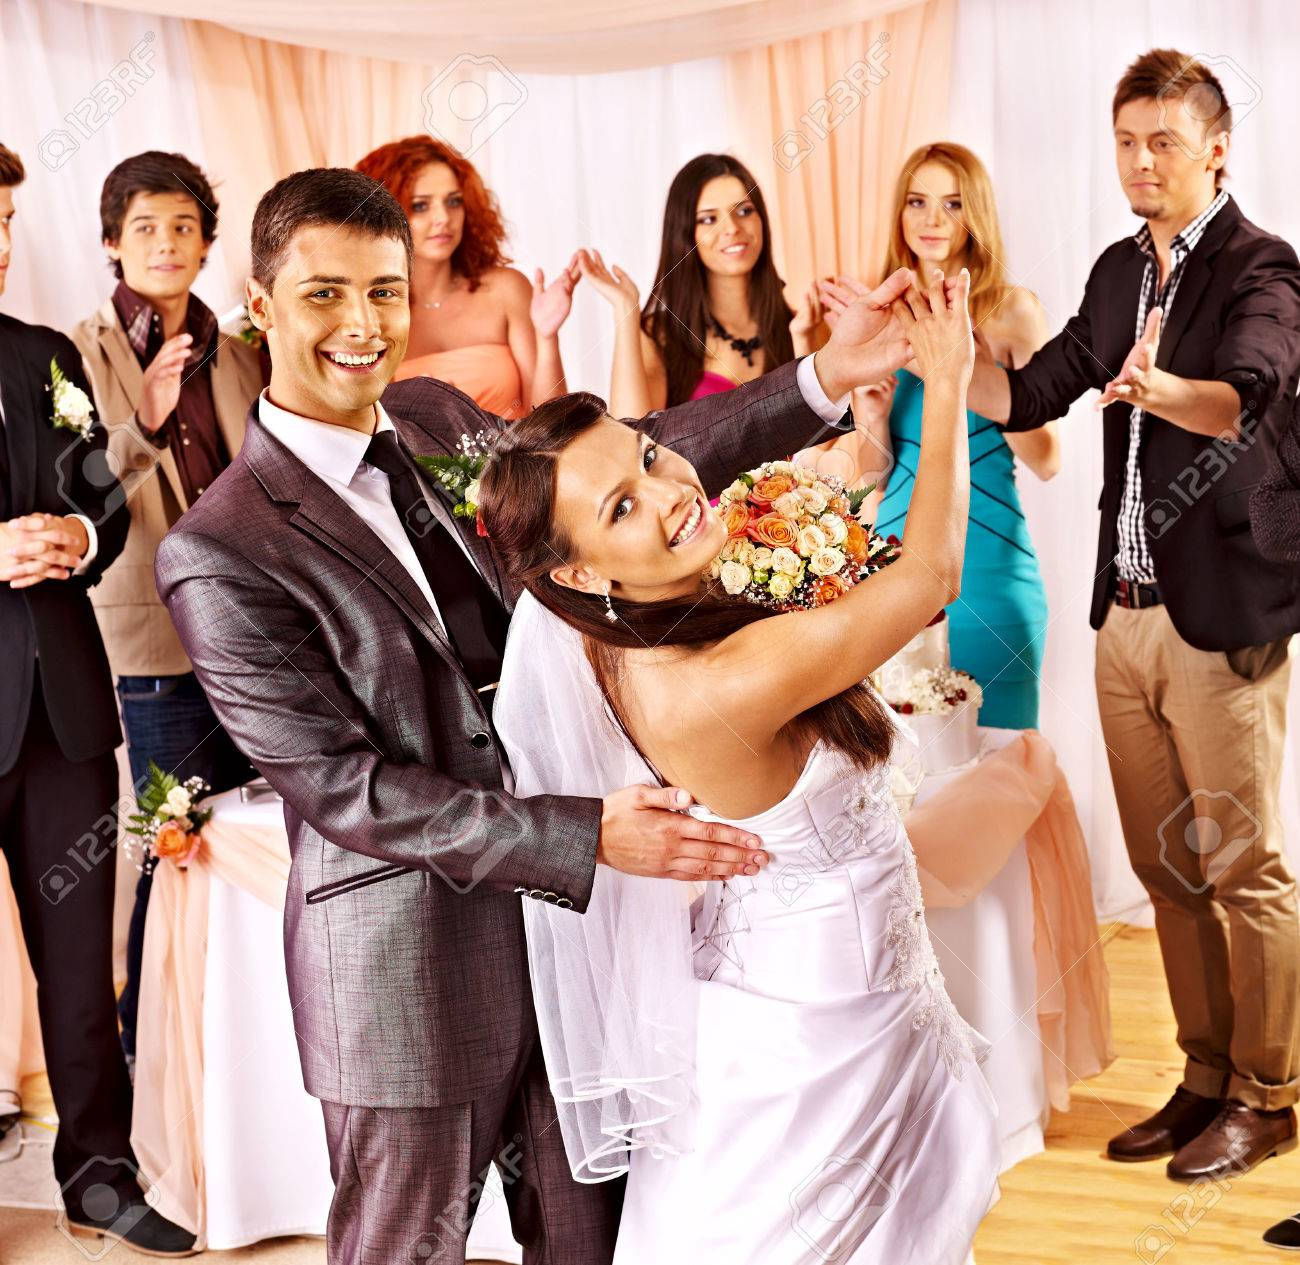 Happy group people at wedding dance. - 25488238